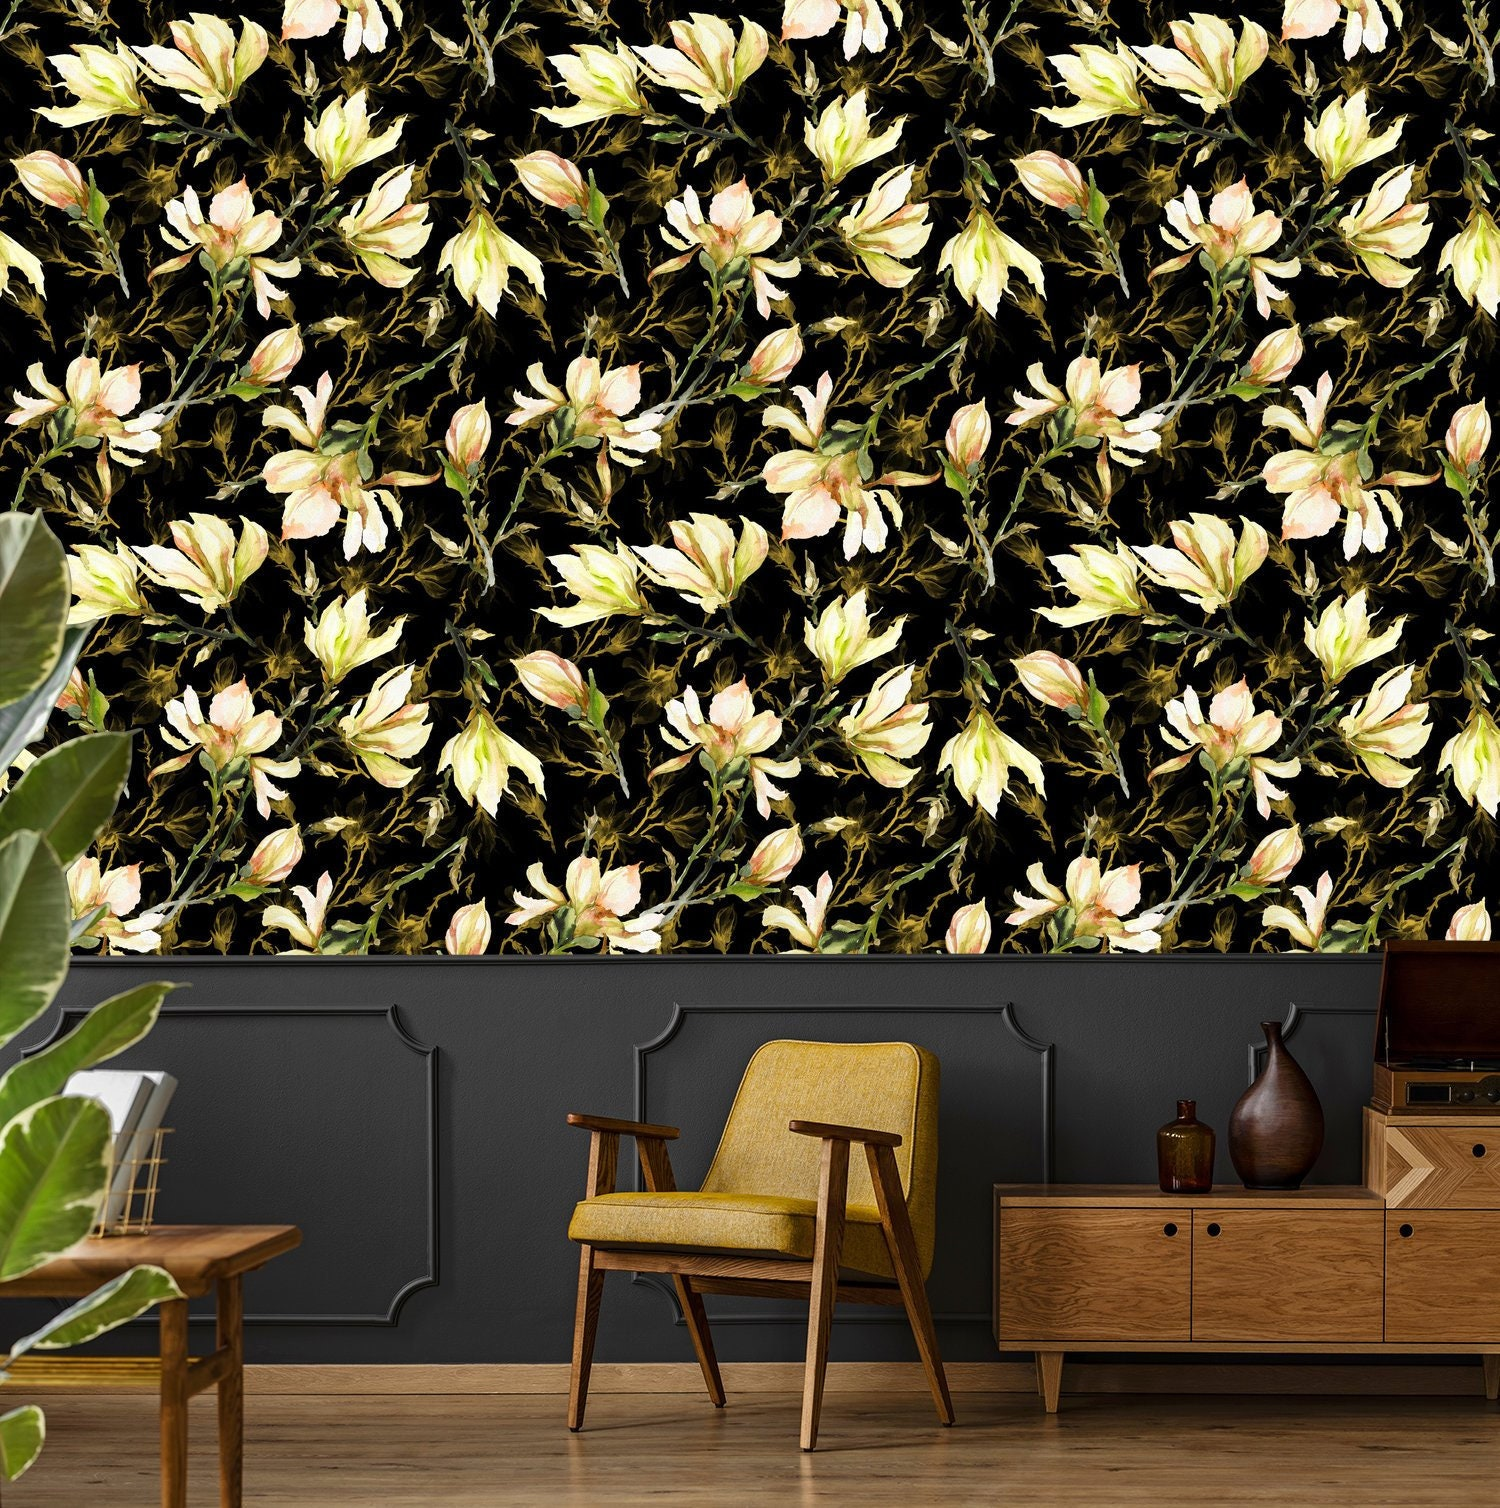 Floral Wallpaper Yellow Magnolia Flowers On Black Background Etsy